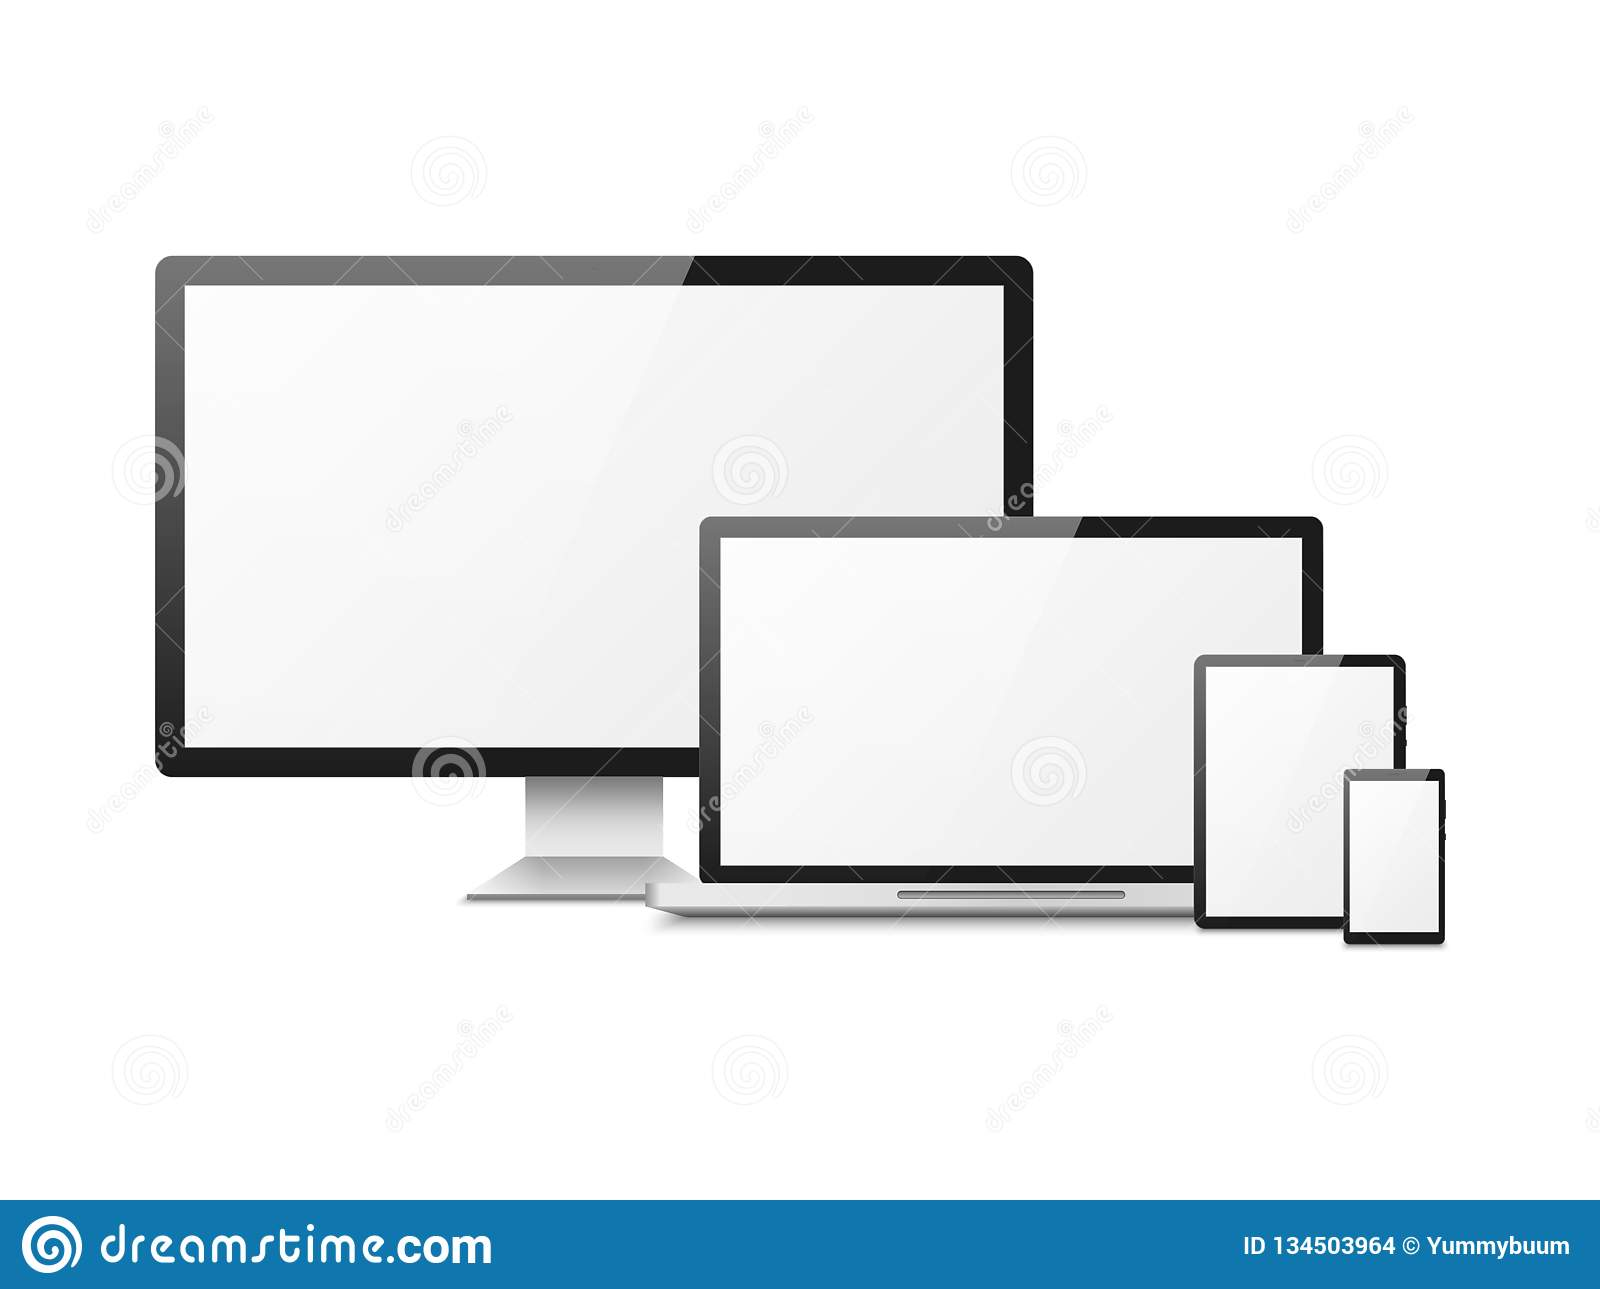 Realistic computer. Devices laptop tablet phone smartphone monitor, computer desktop screen, responsive web layout